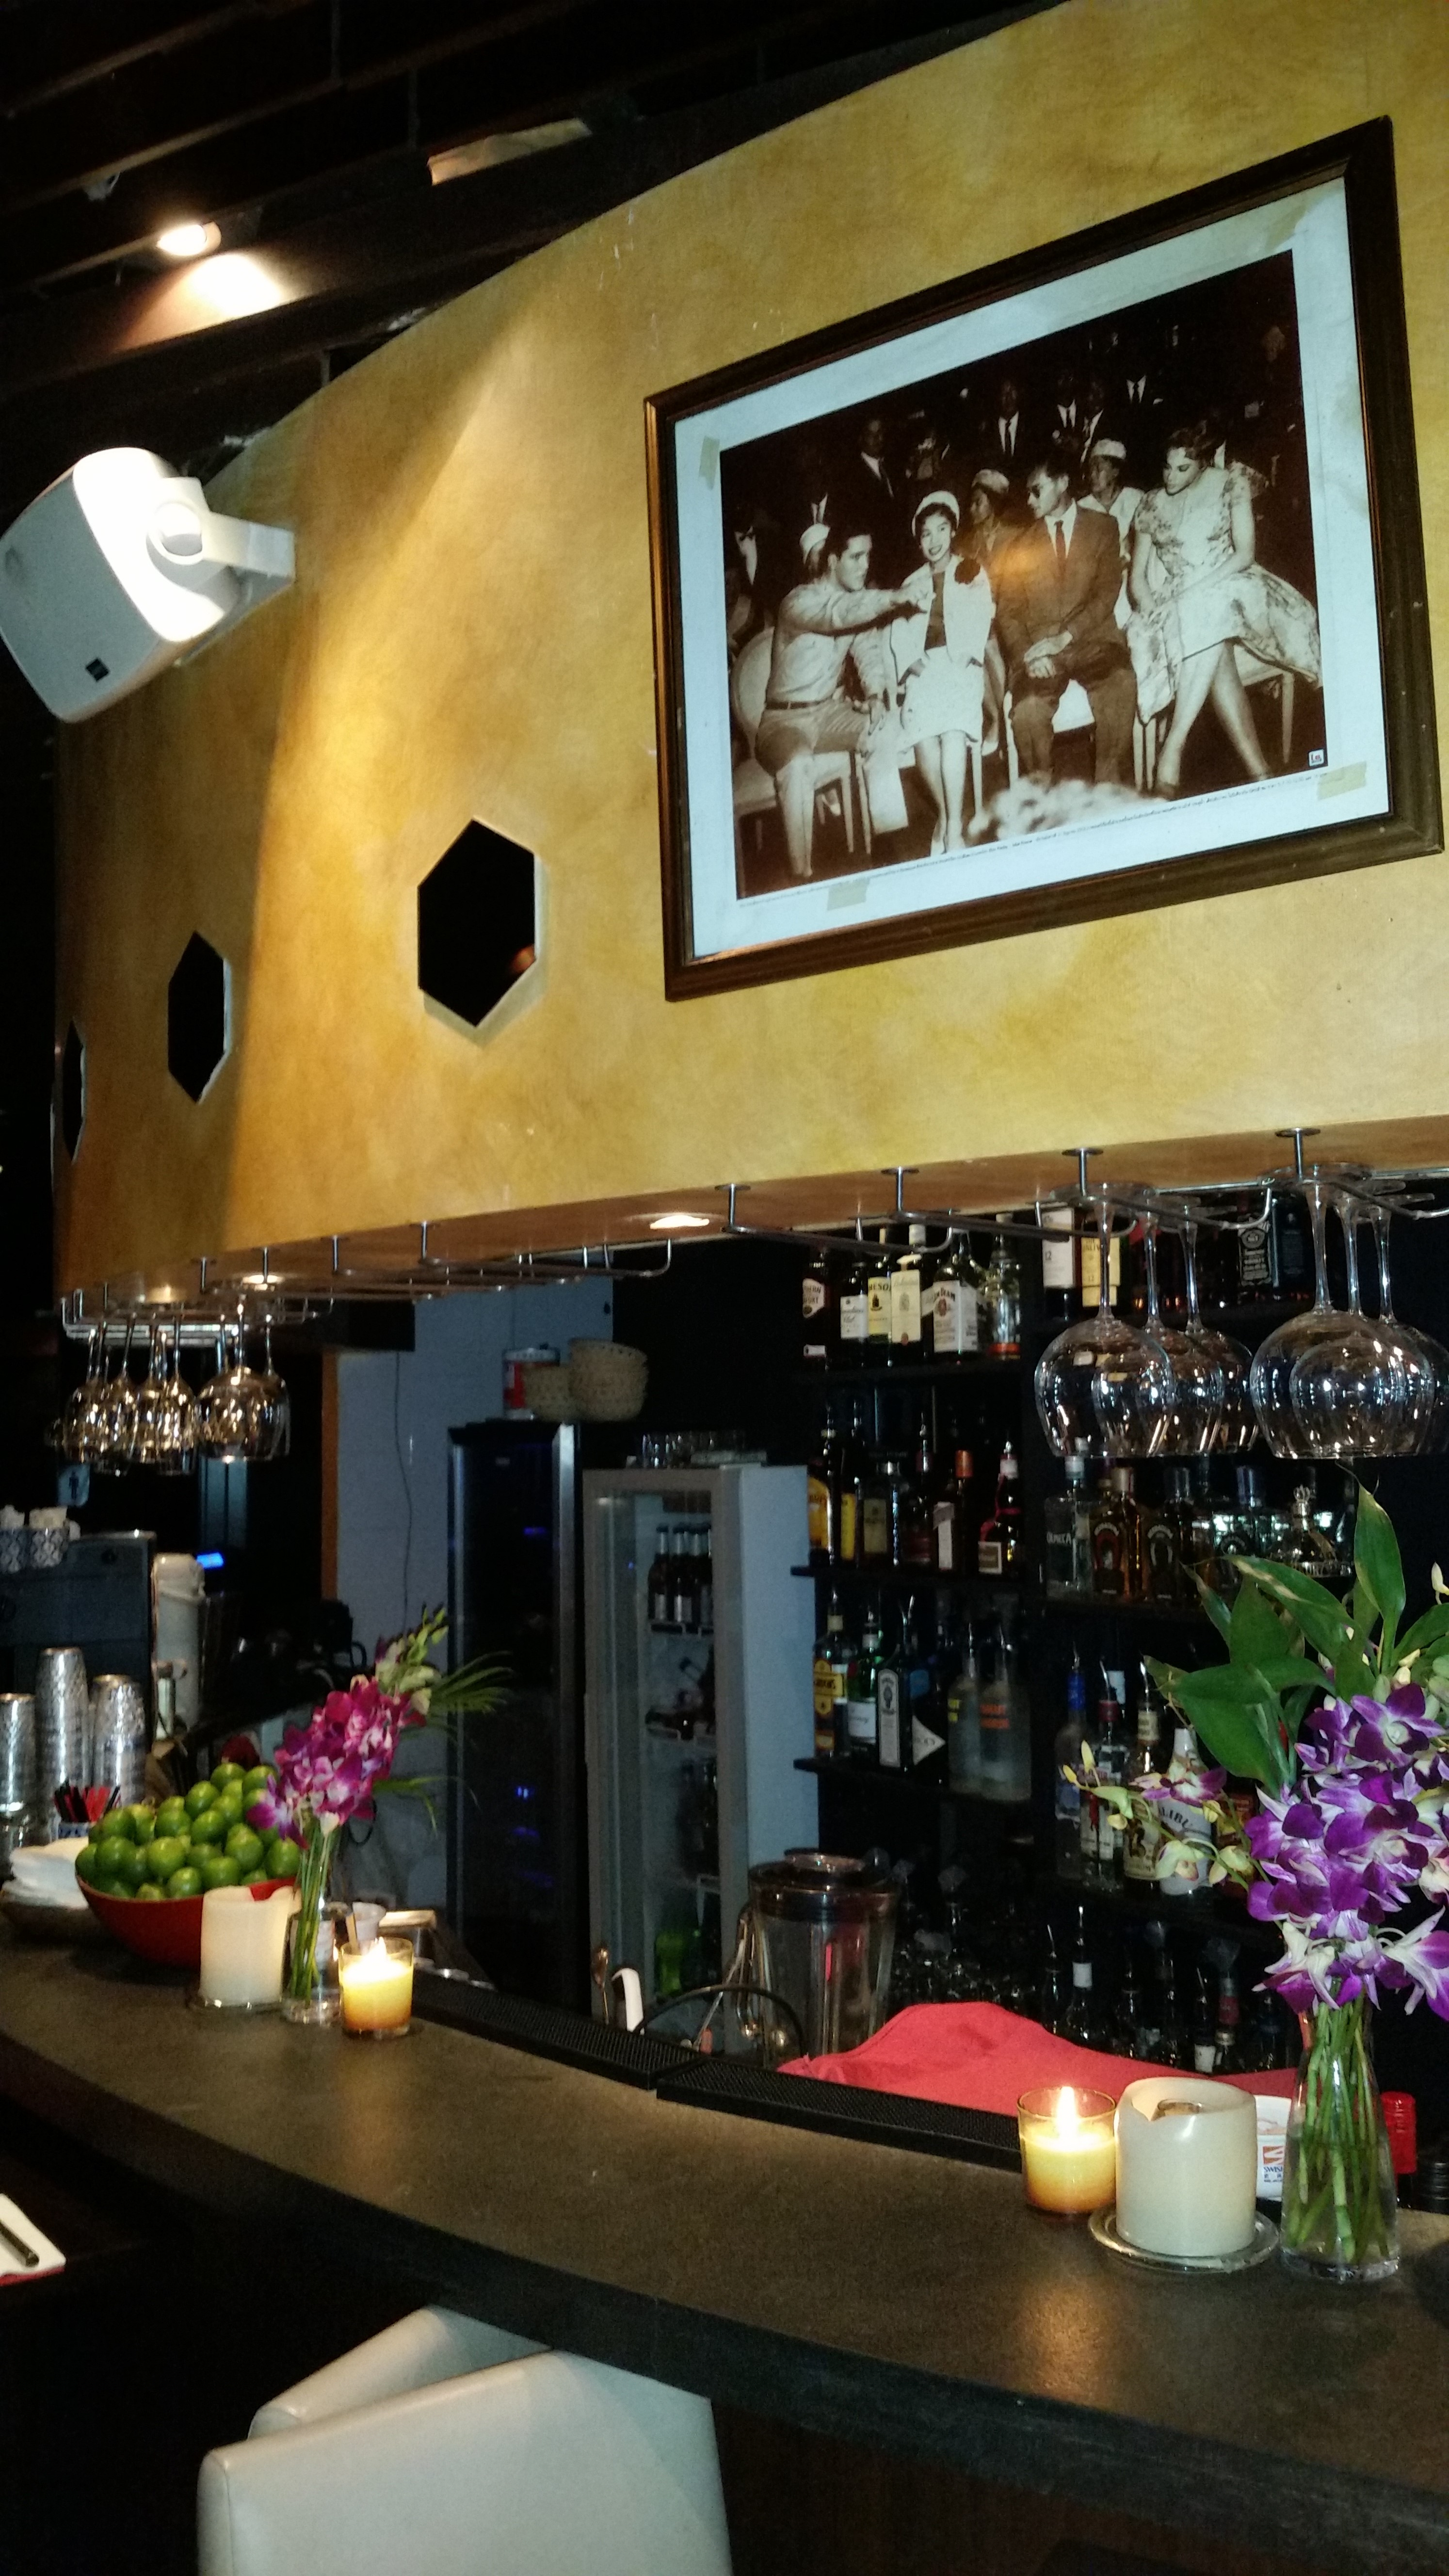 Bespoke painting and commercial renovation of Koh Thai bar, SoHo